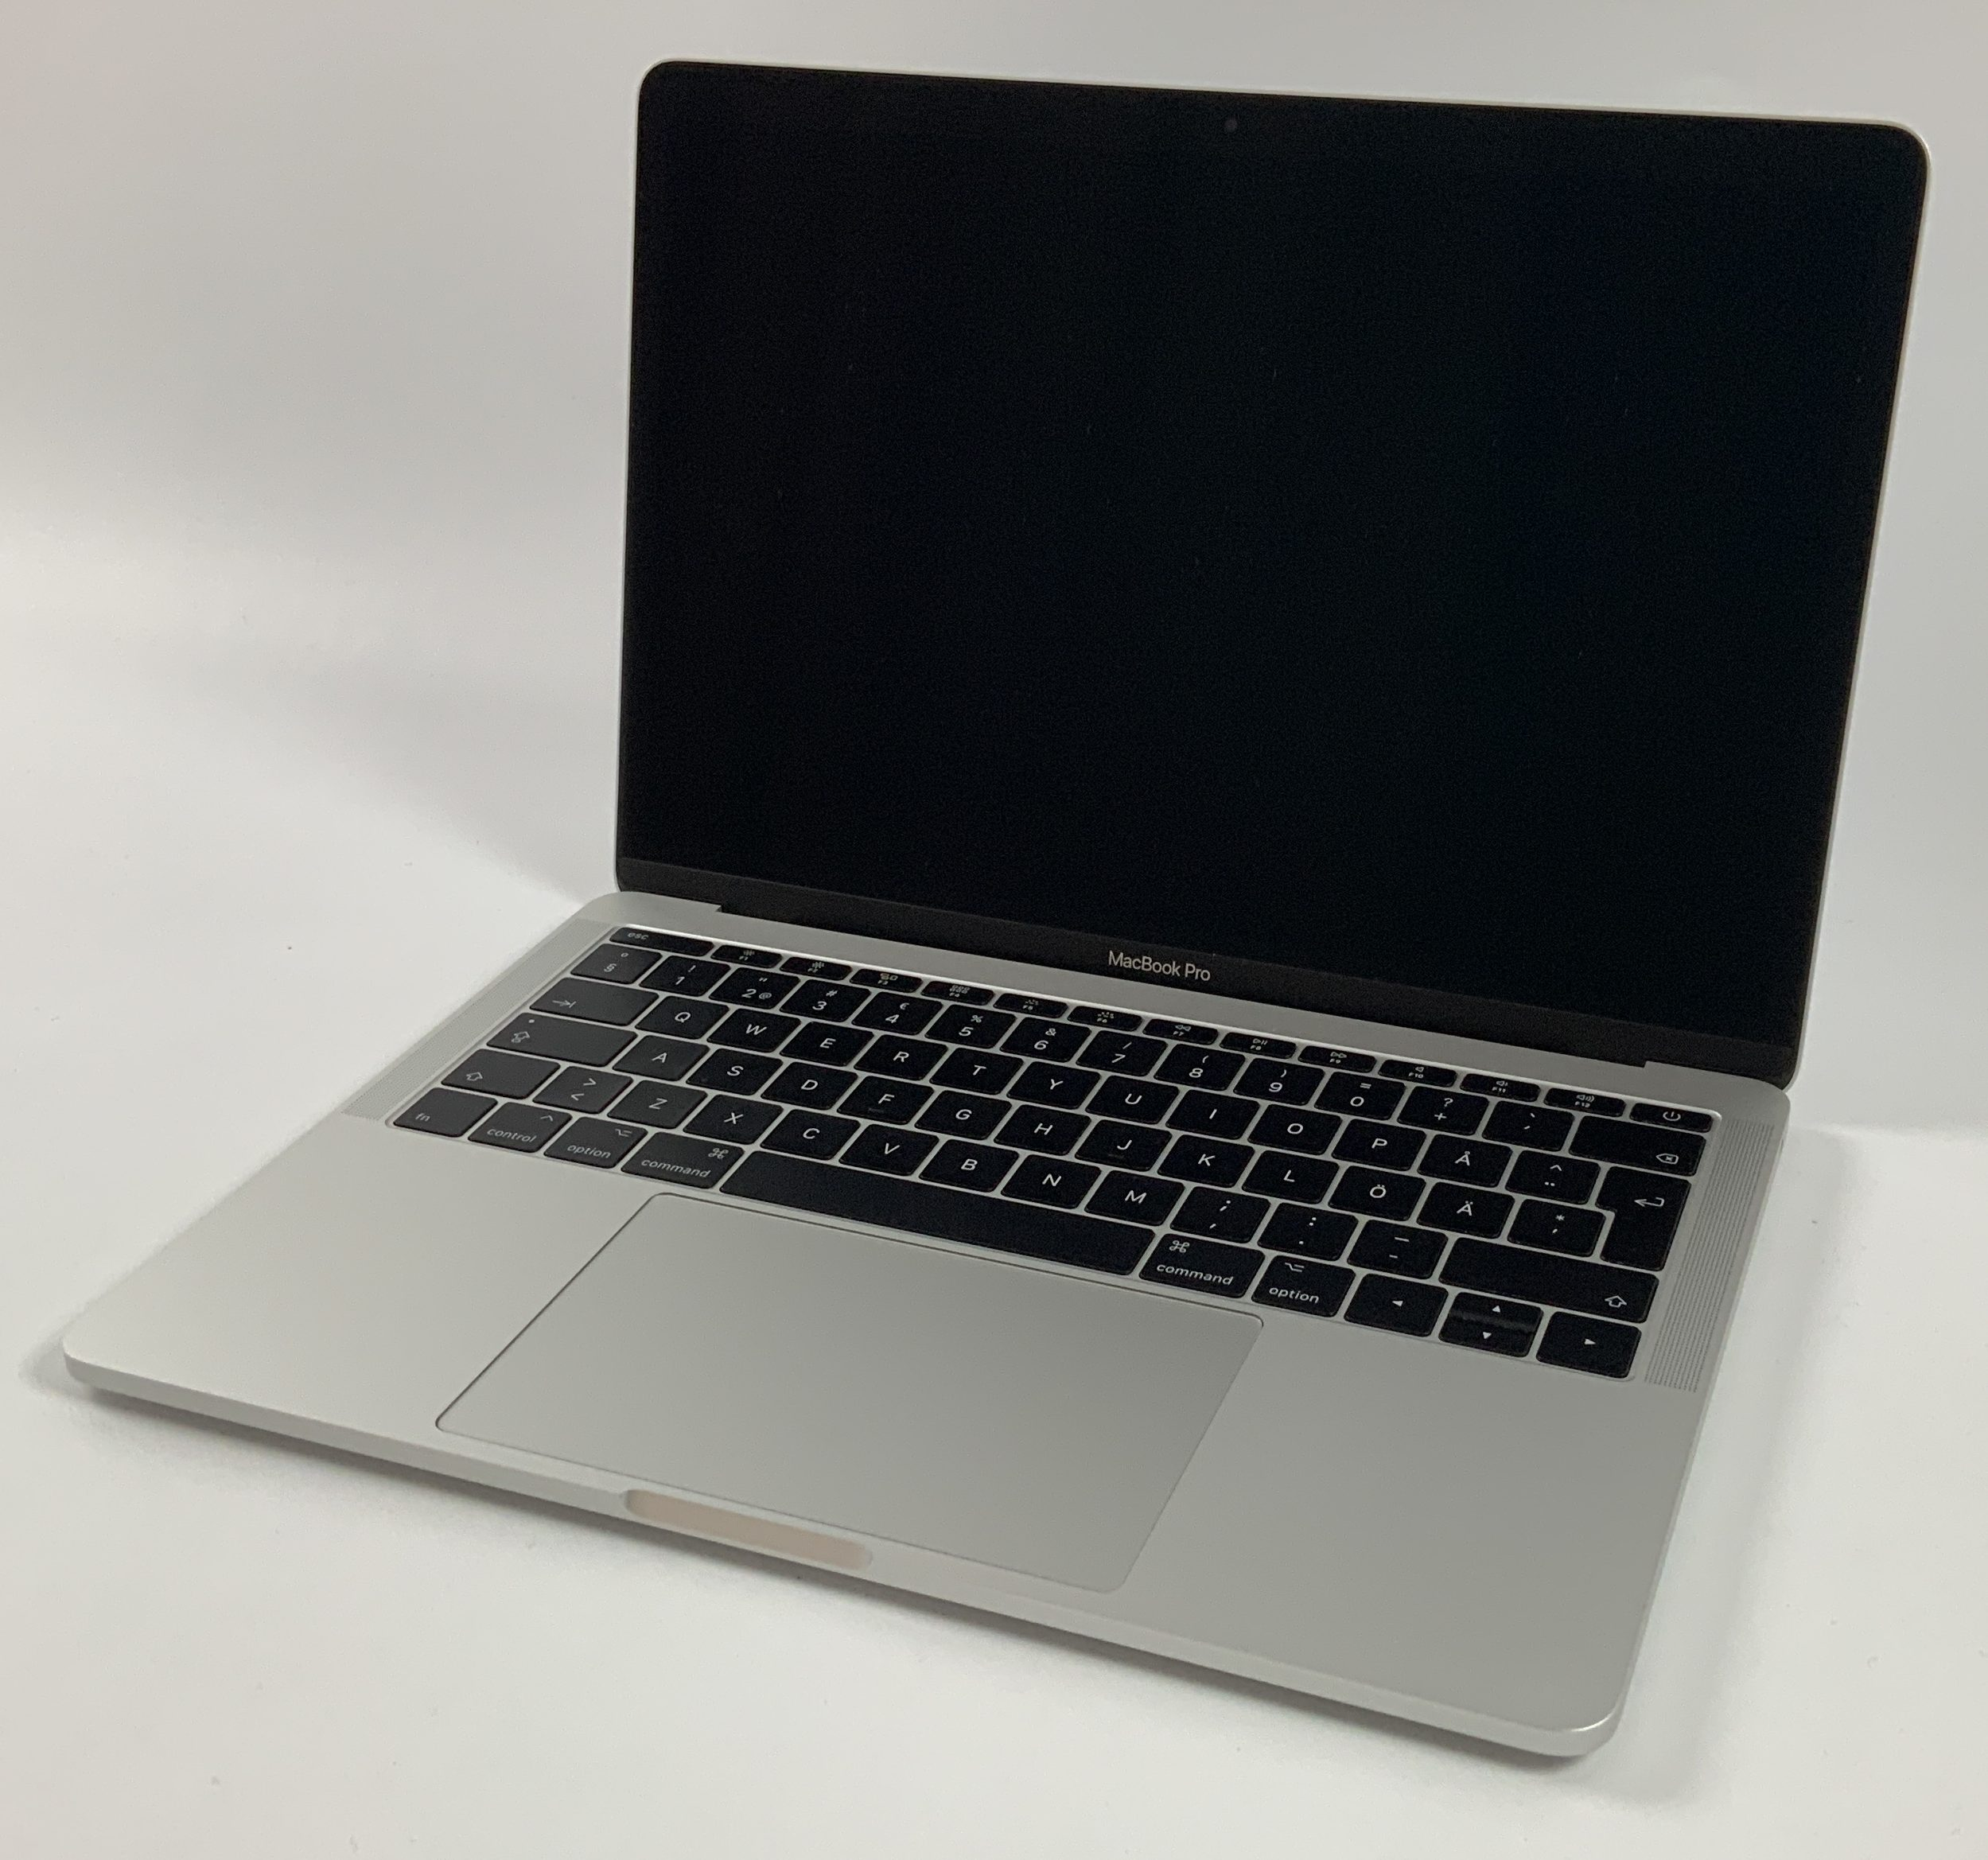 "MacBook Pro 13"" 2TBT Mid 2017 (Intel Core i5 2.3 GHz 8 GB RAM 128 GB SSD), Silver, Intel Core i5 2.3 GHz, 8 GB RAM, 128 GB SSD, bild 1"